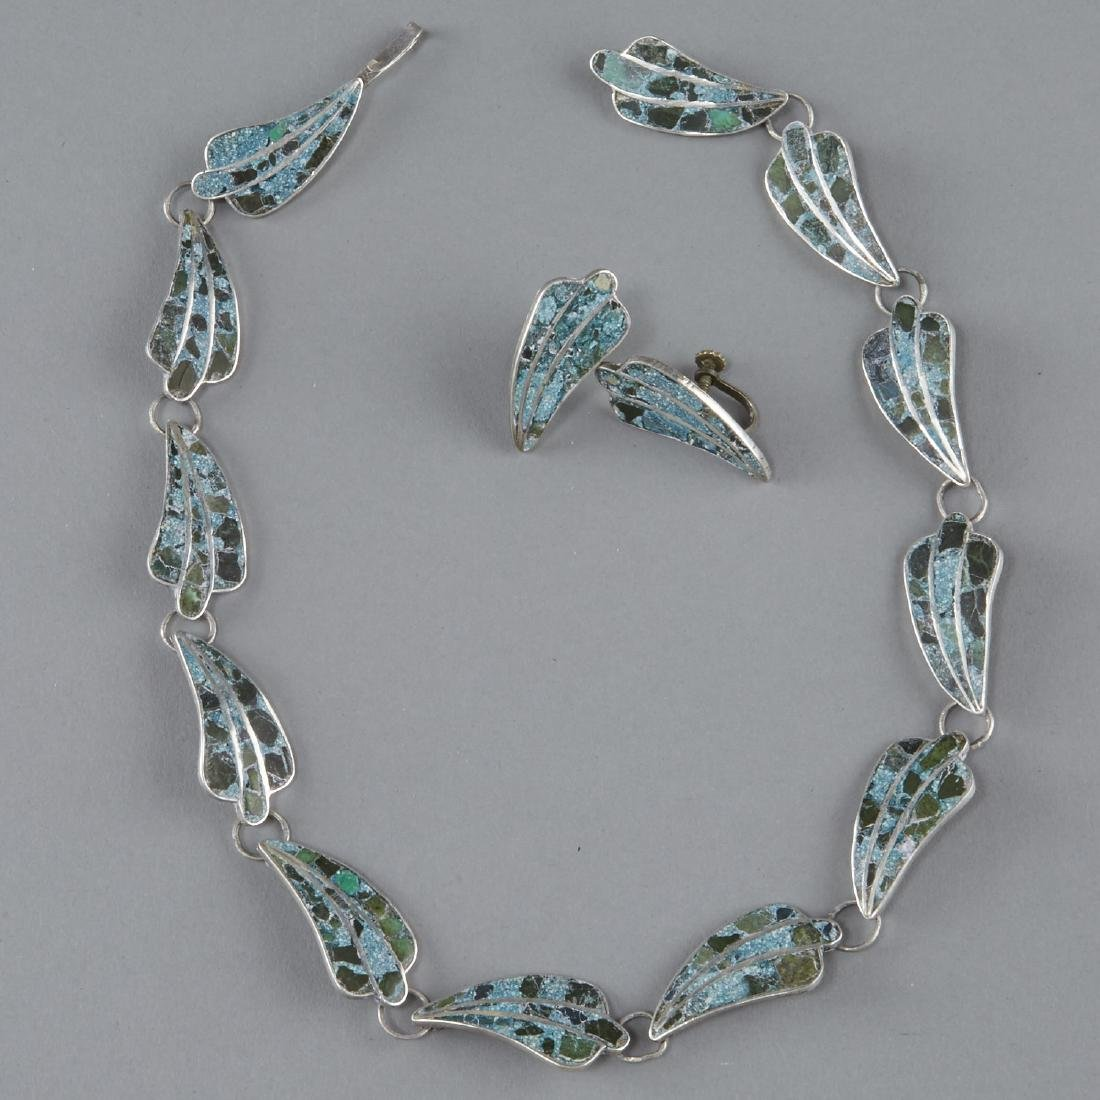 Southwestern Jewelry Silver, Turquoise, etc. - 6